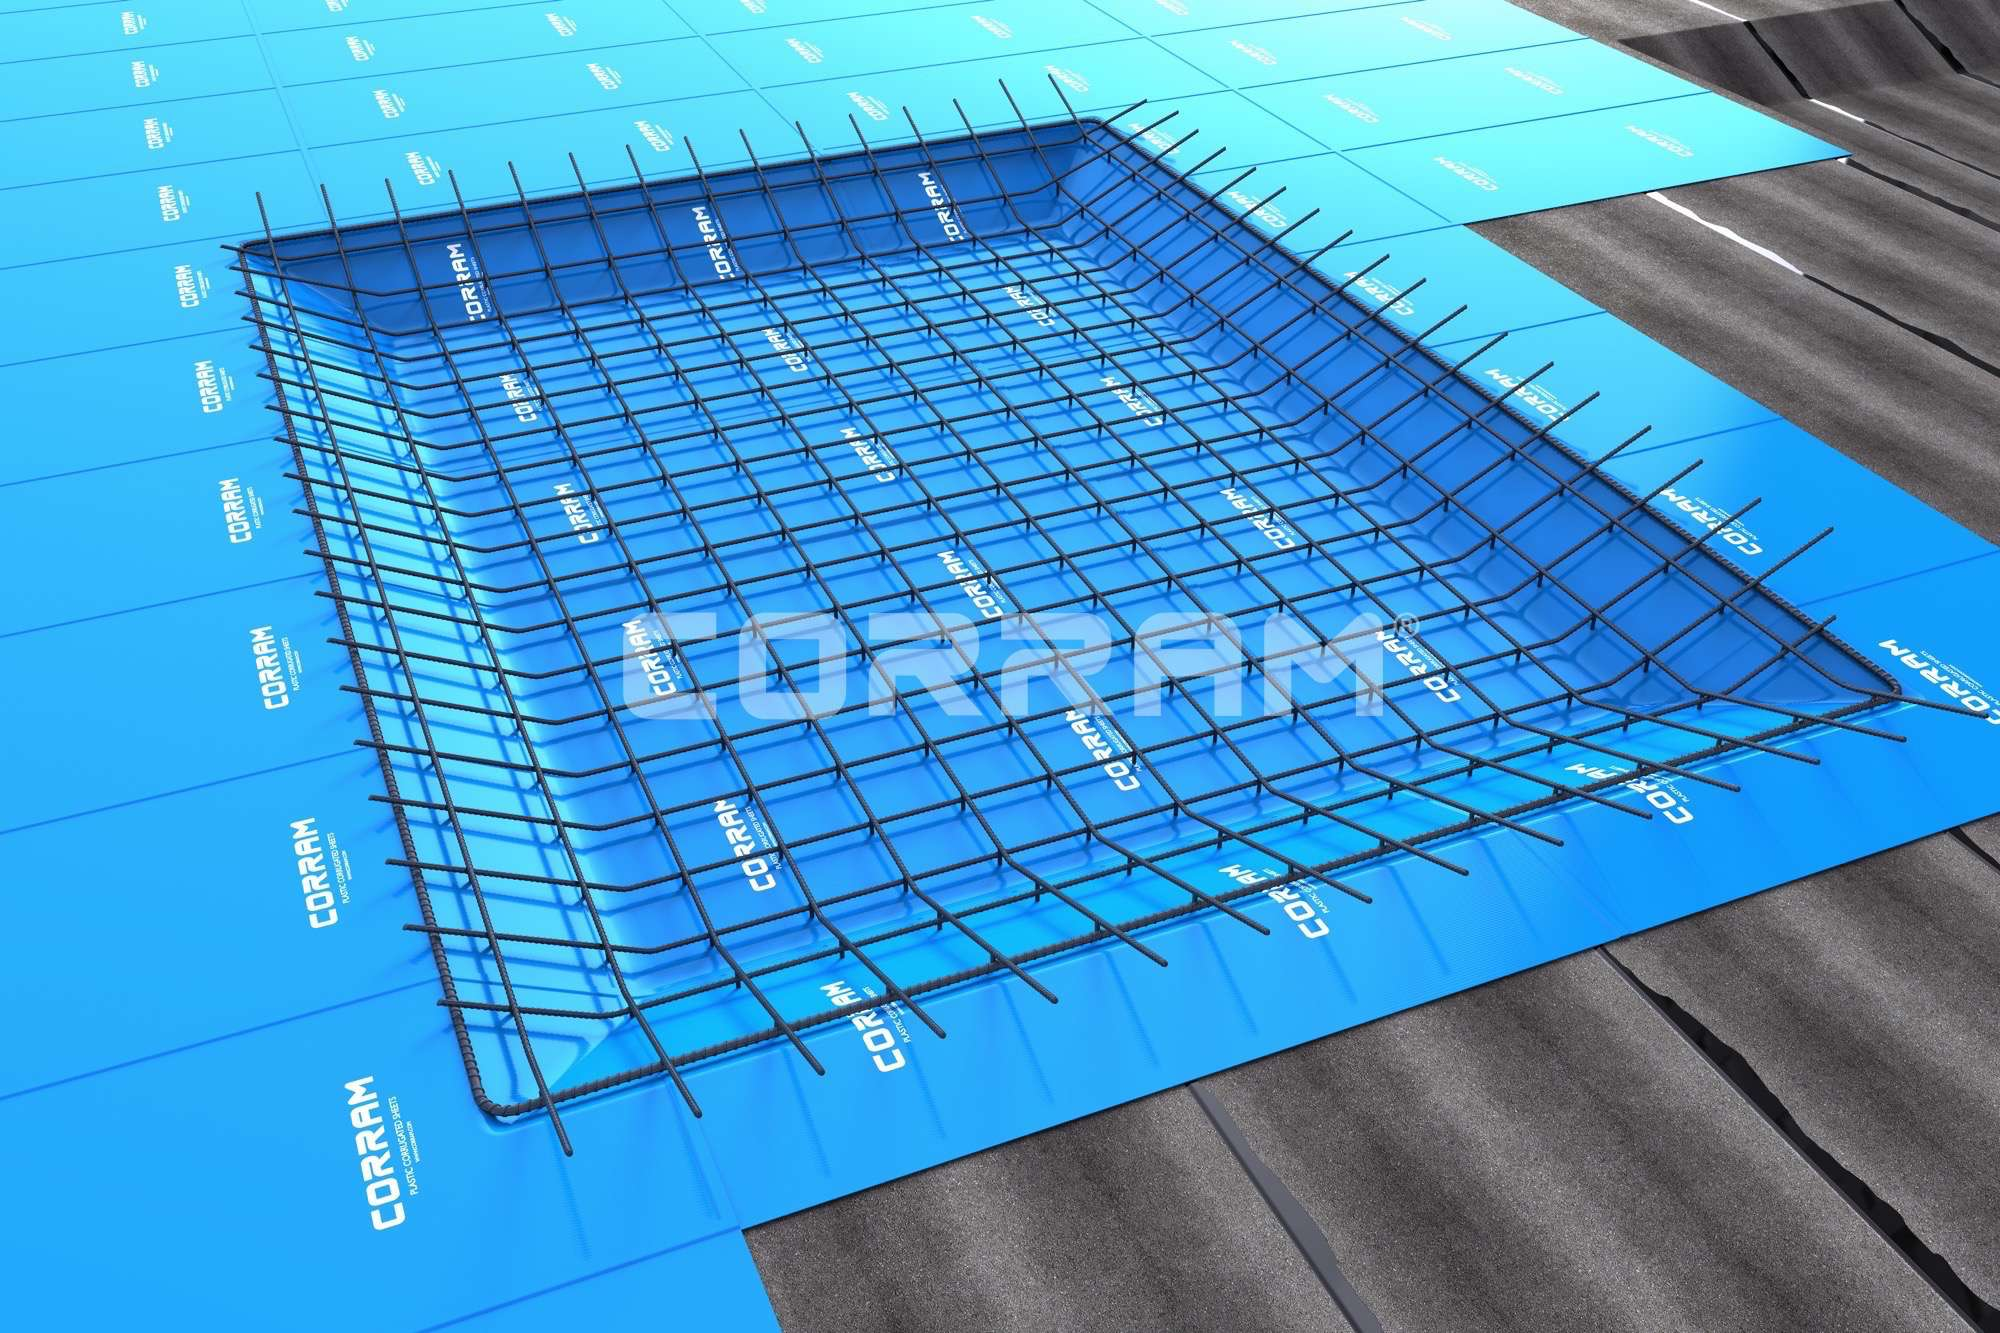 Waterproofing Membrane For Protection : Waterproof membrane protection